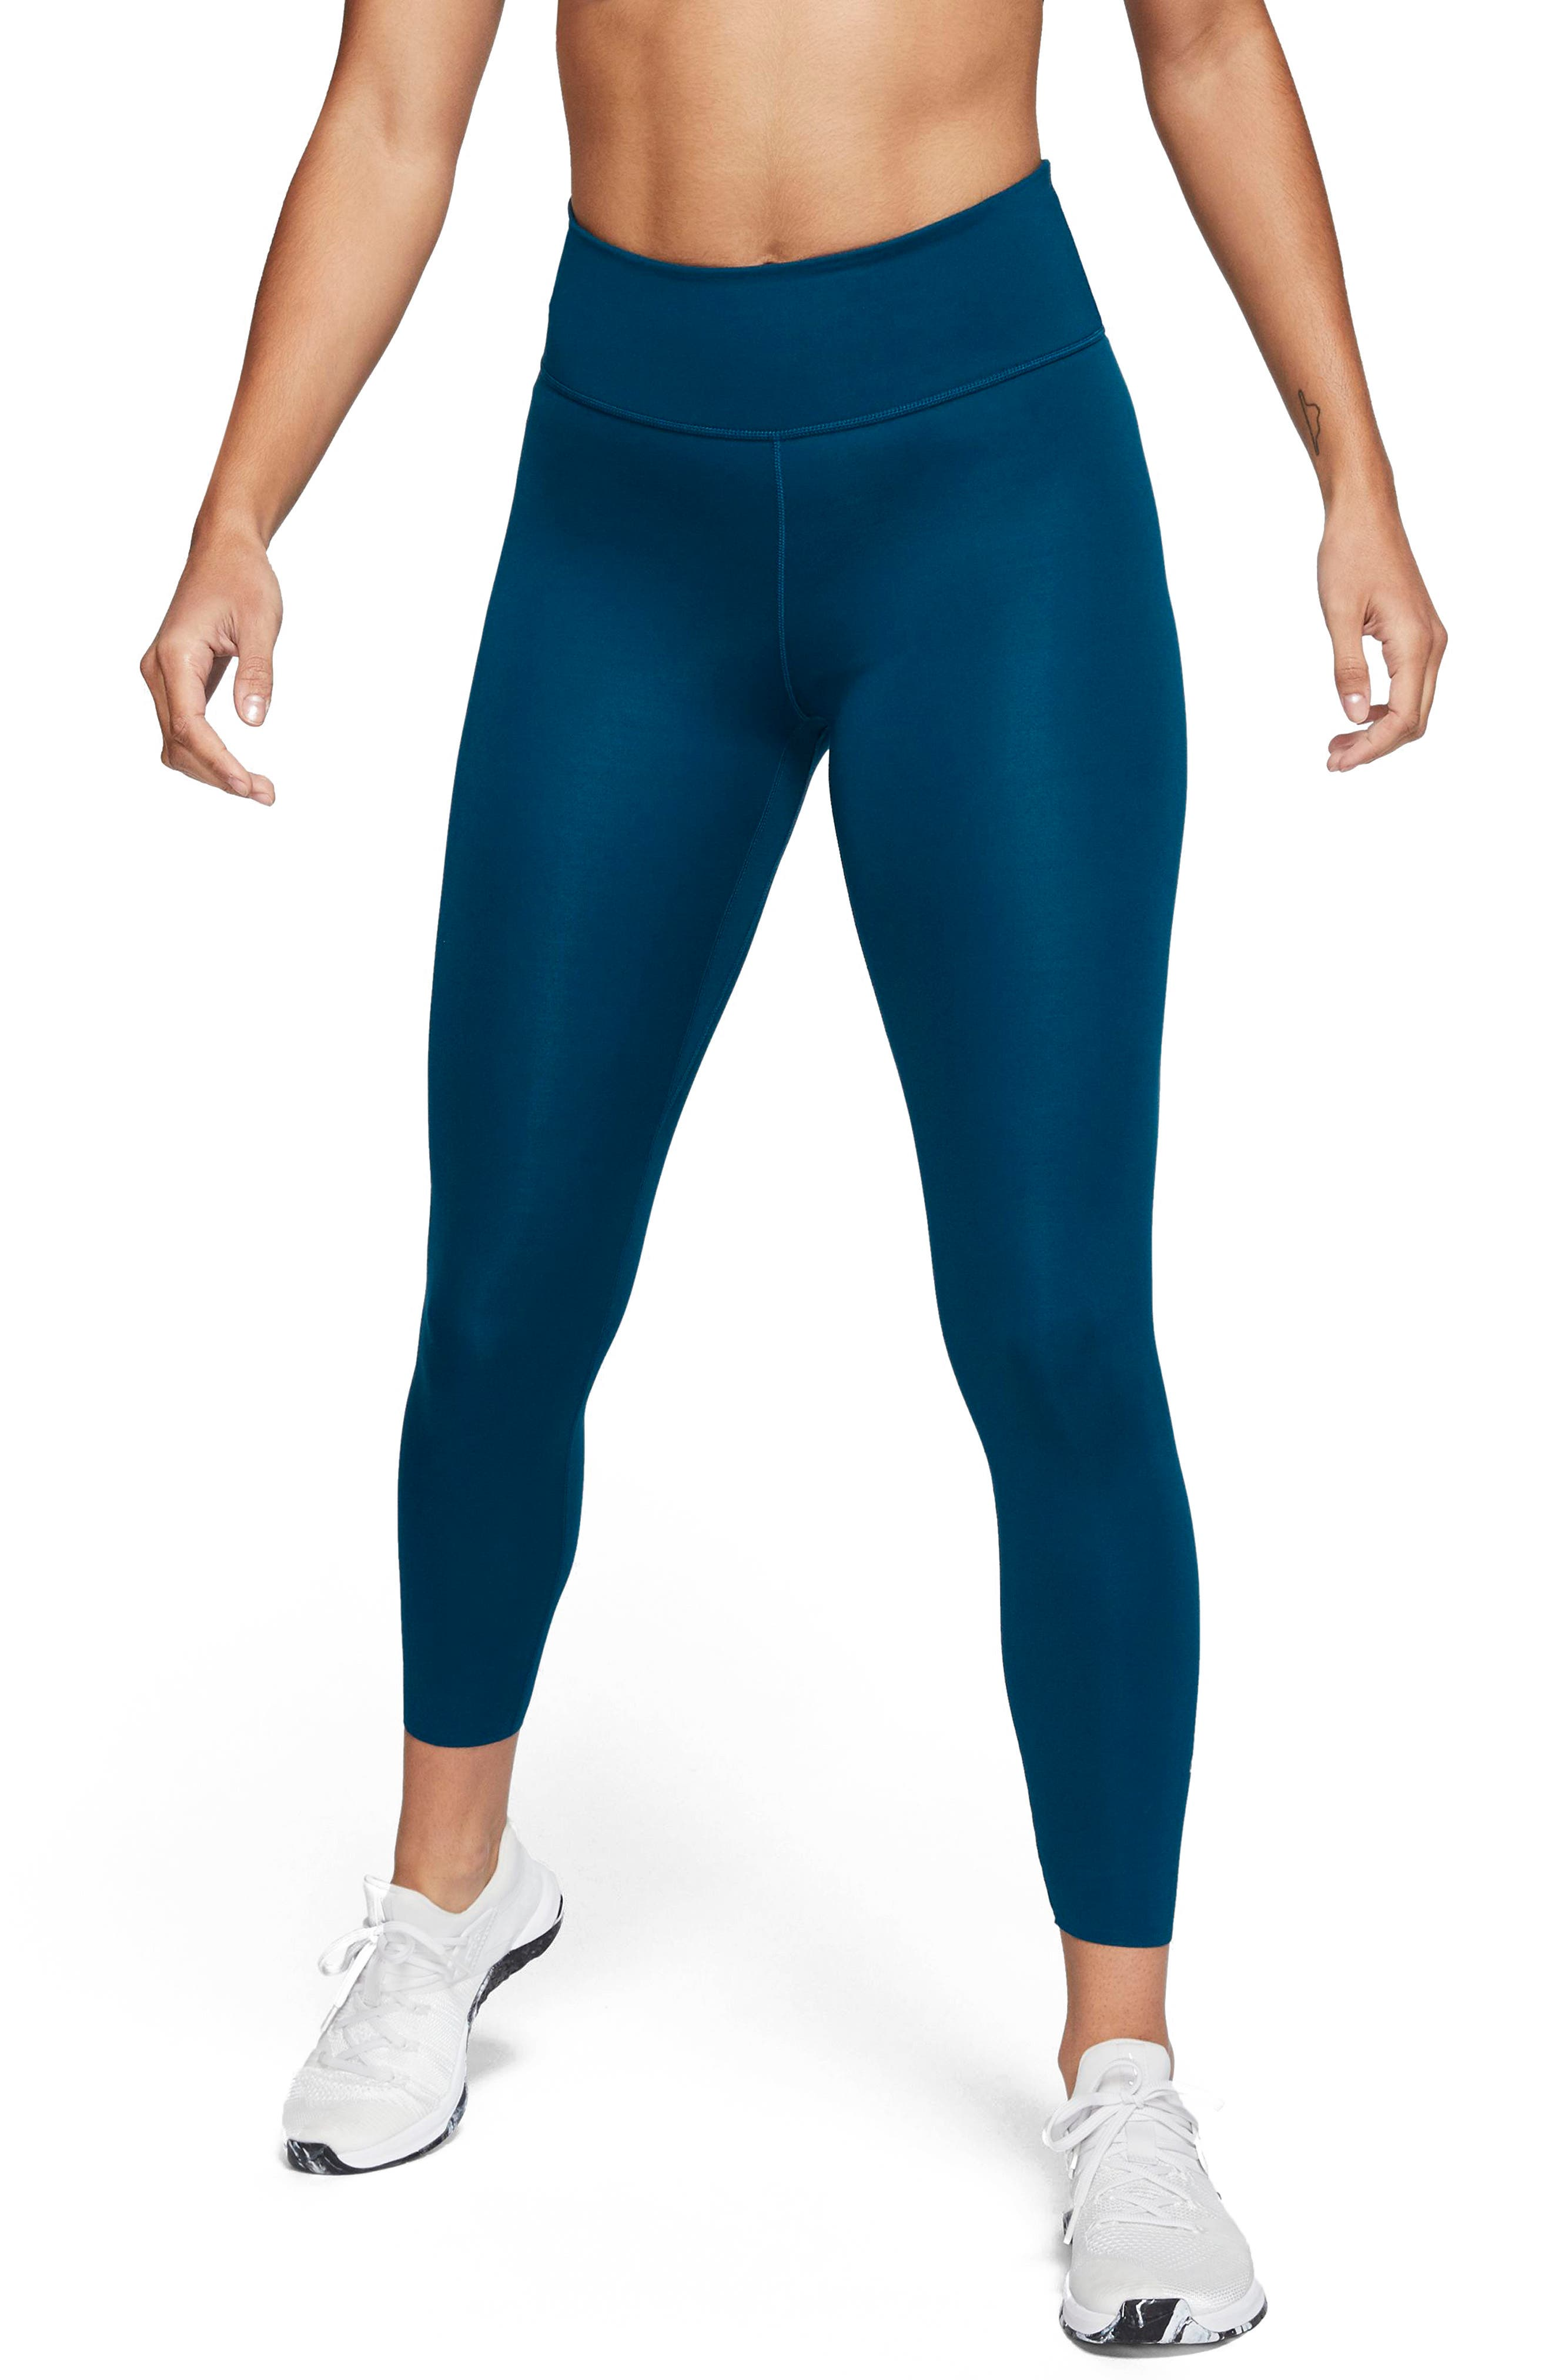 Nike One Lux 7/8 Tights   Nordstrom